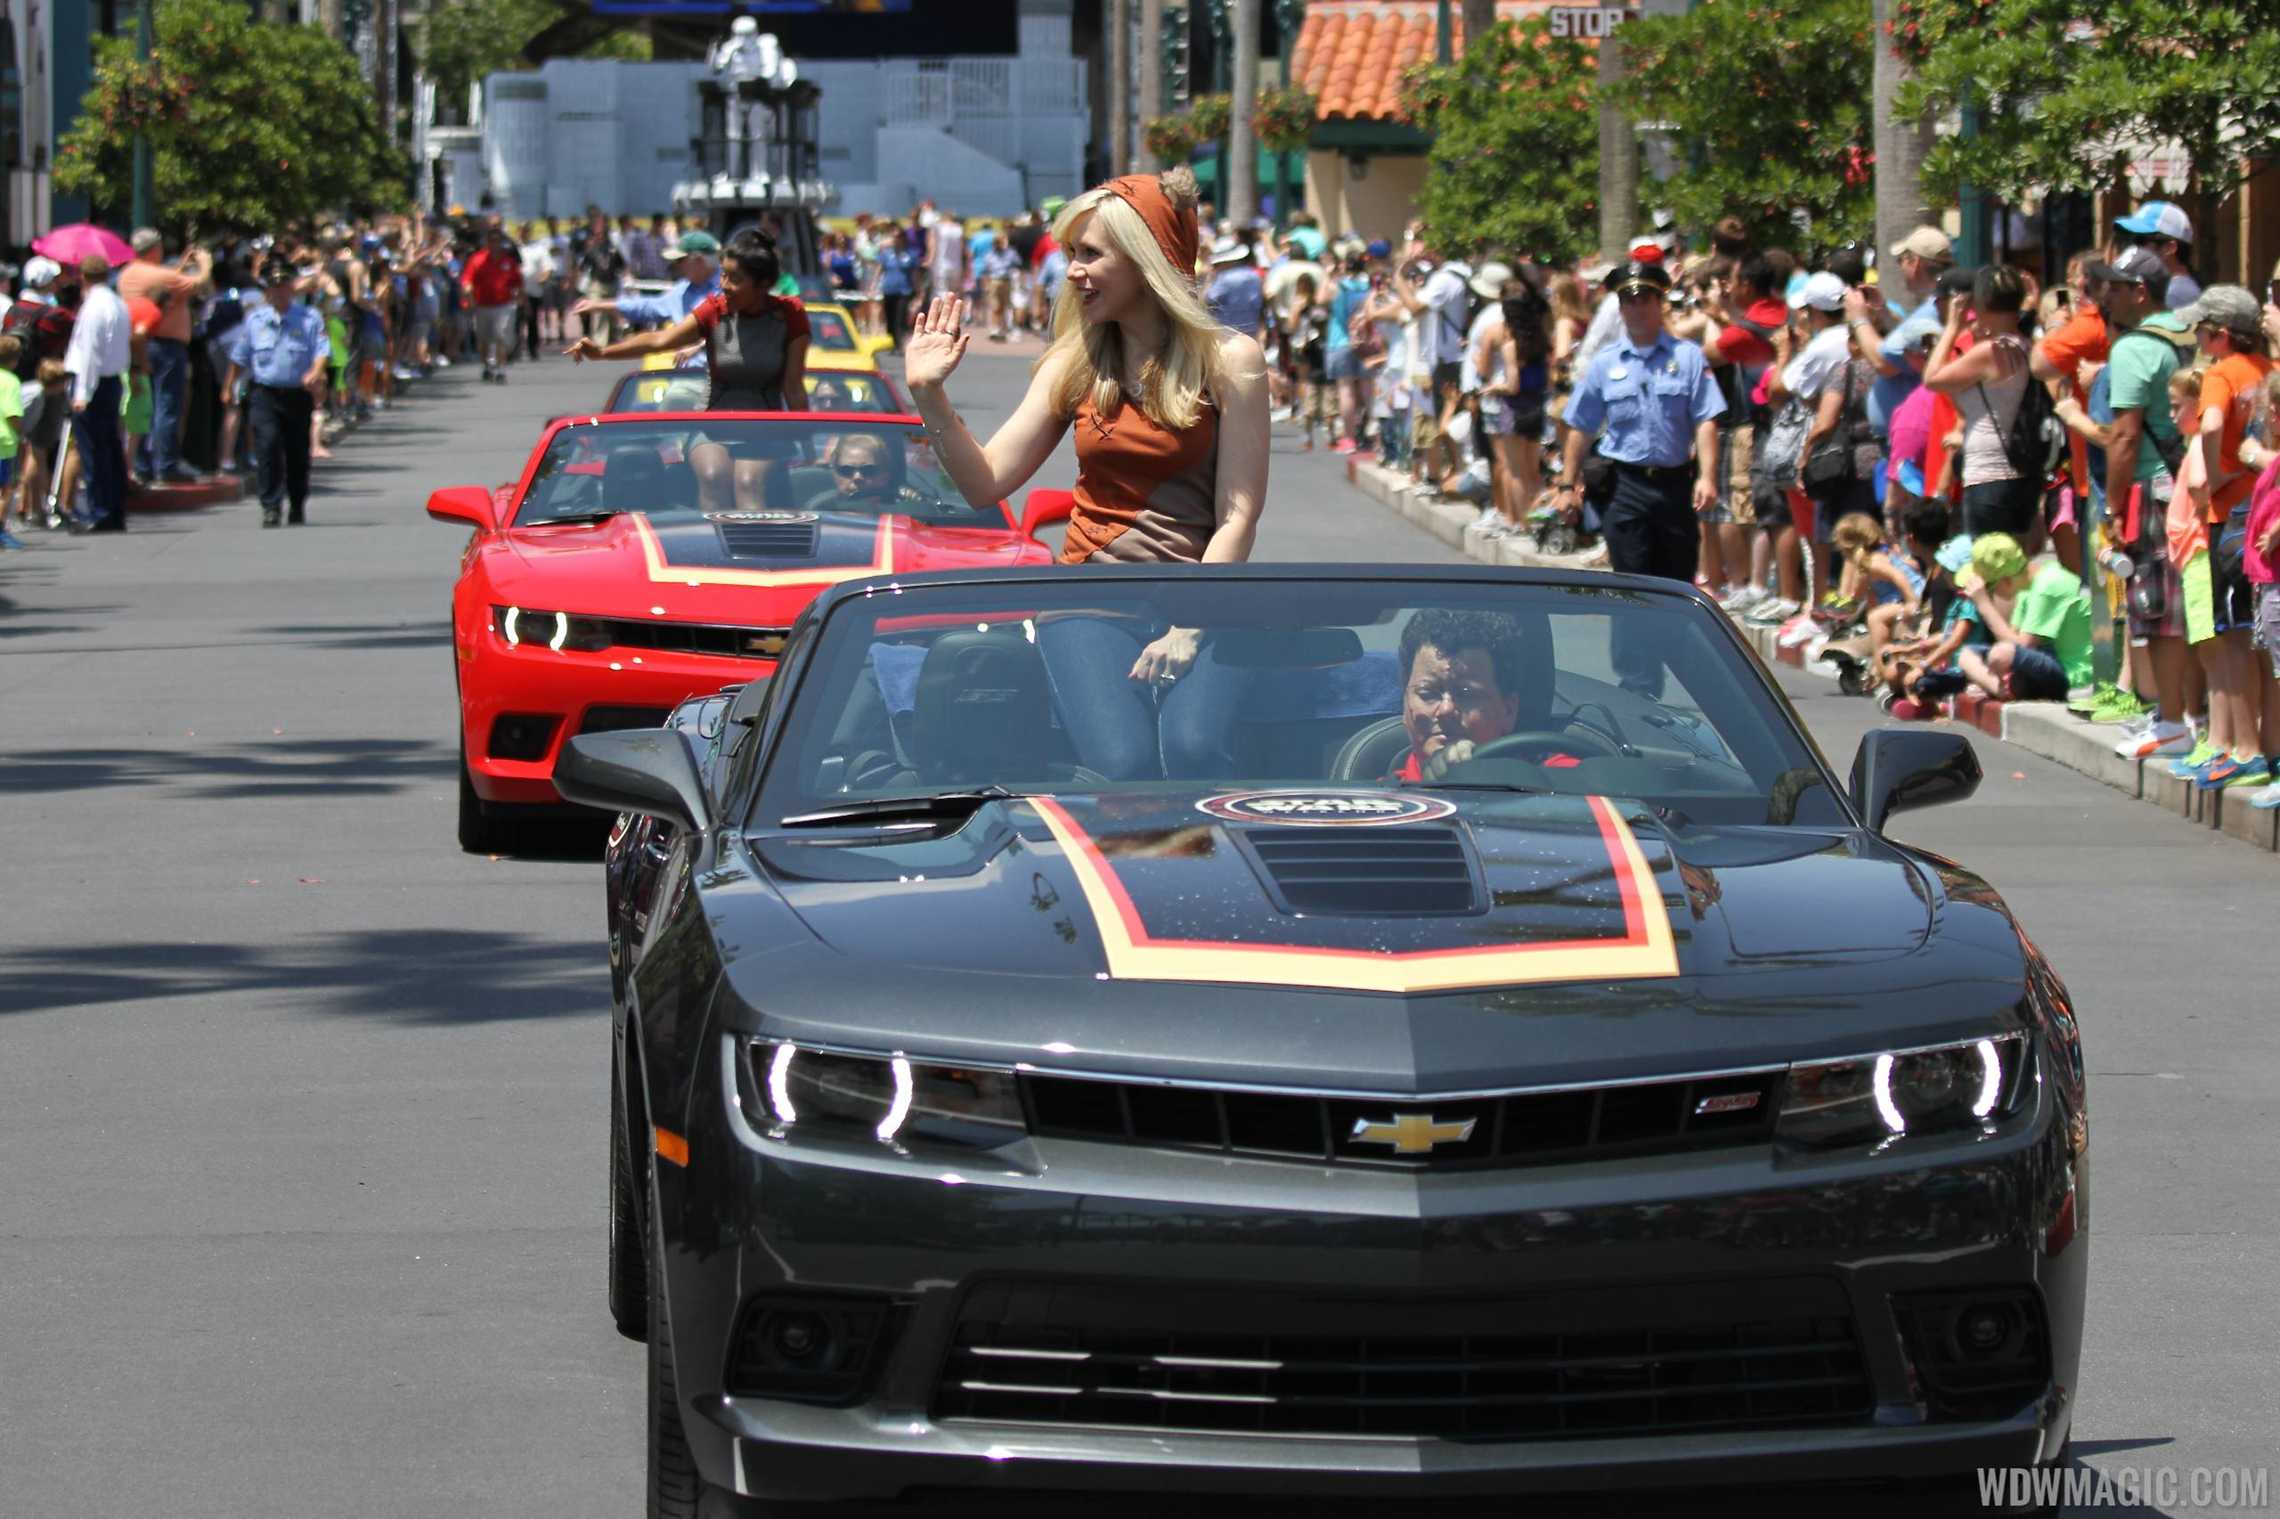 2014 Star Wars Weekends - Weekend 2 Legends of the Force motorcade - Ashley Eckstein